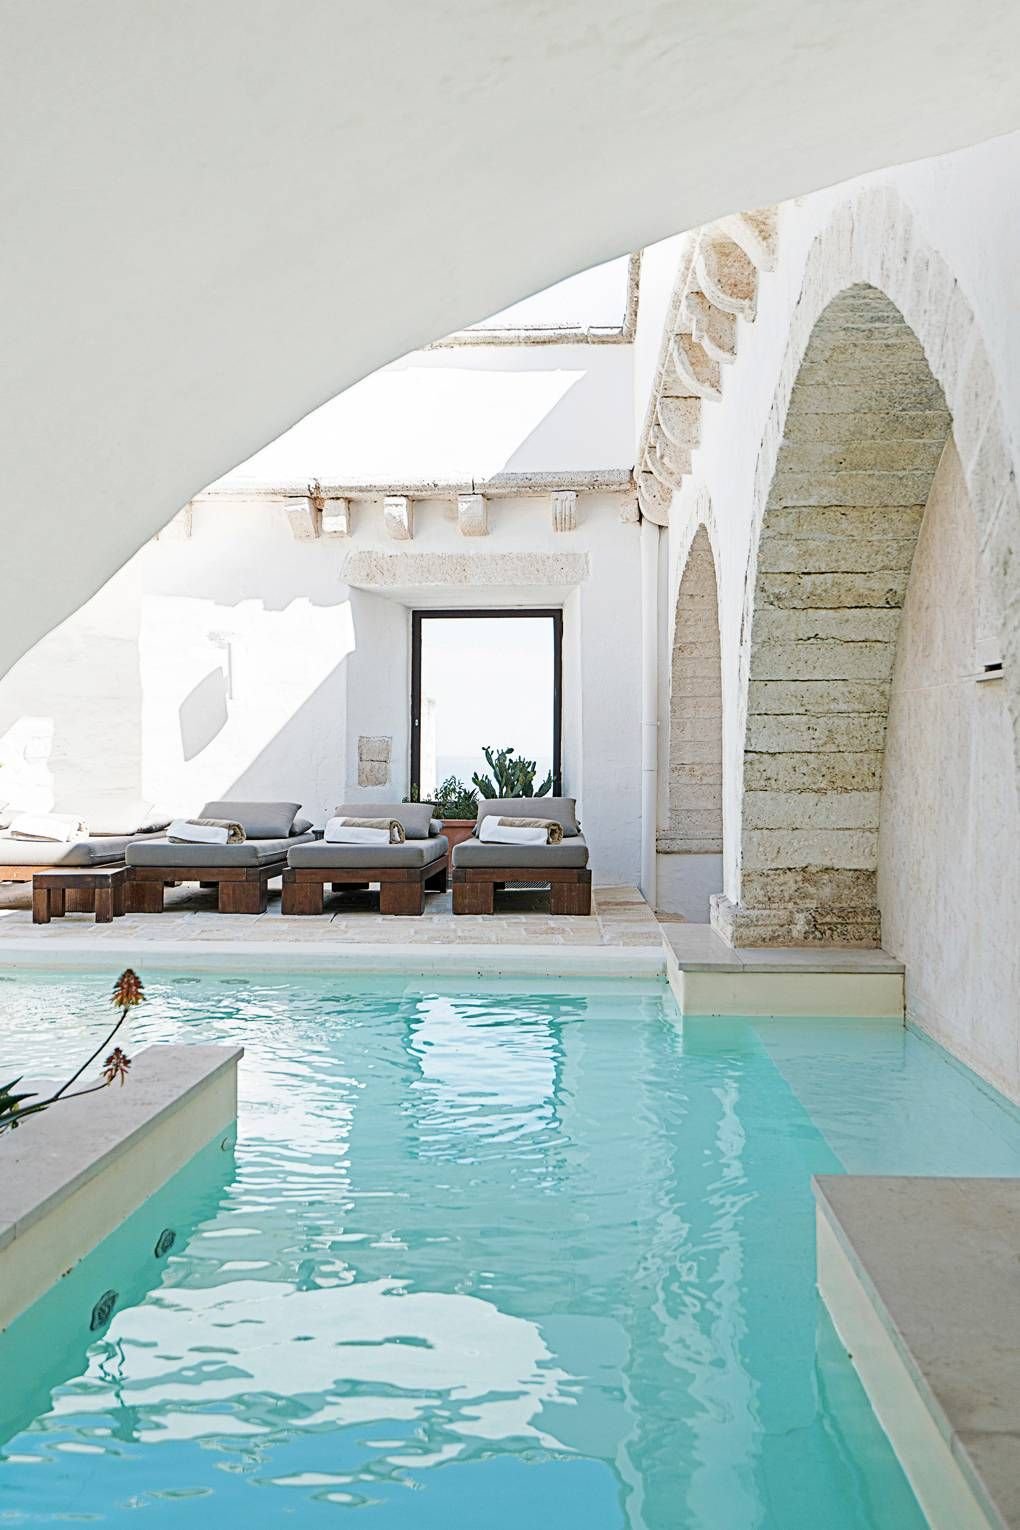 Inside some of the coolest #cave hotels, including this white-washed stone #hotel in Ostuni in Puglia, southern #Italy.